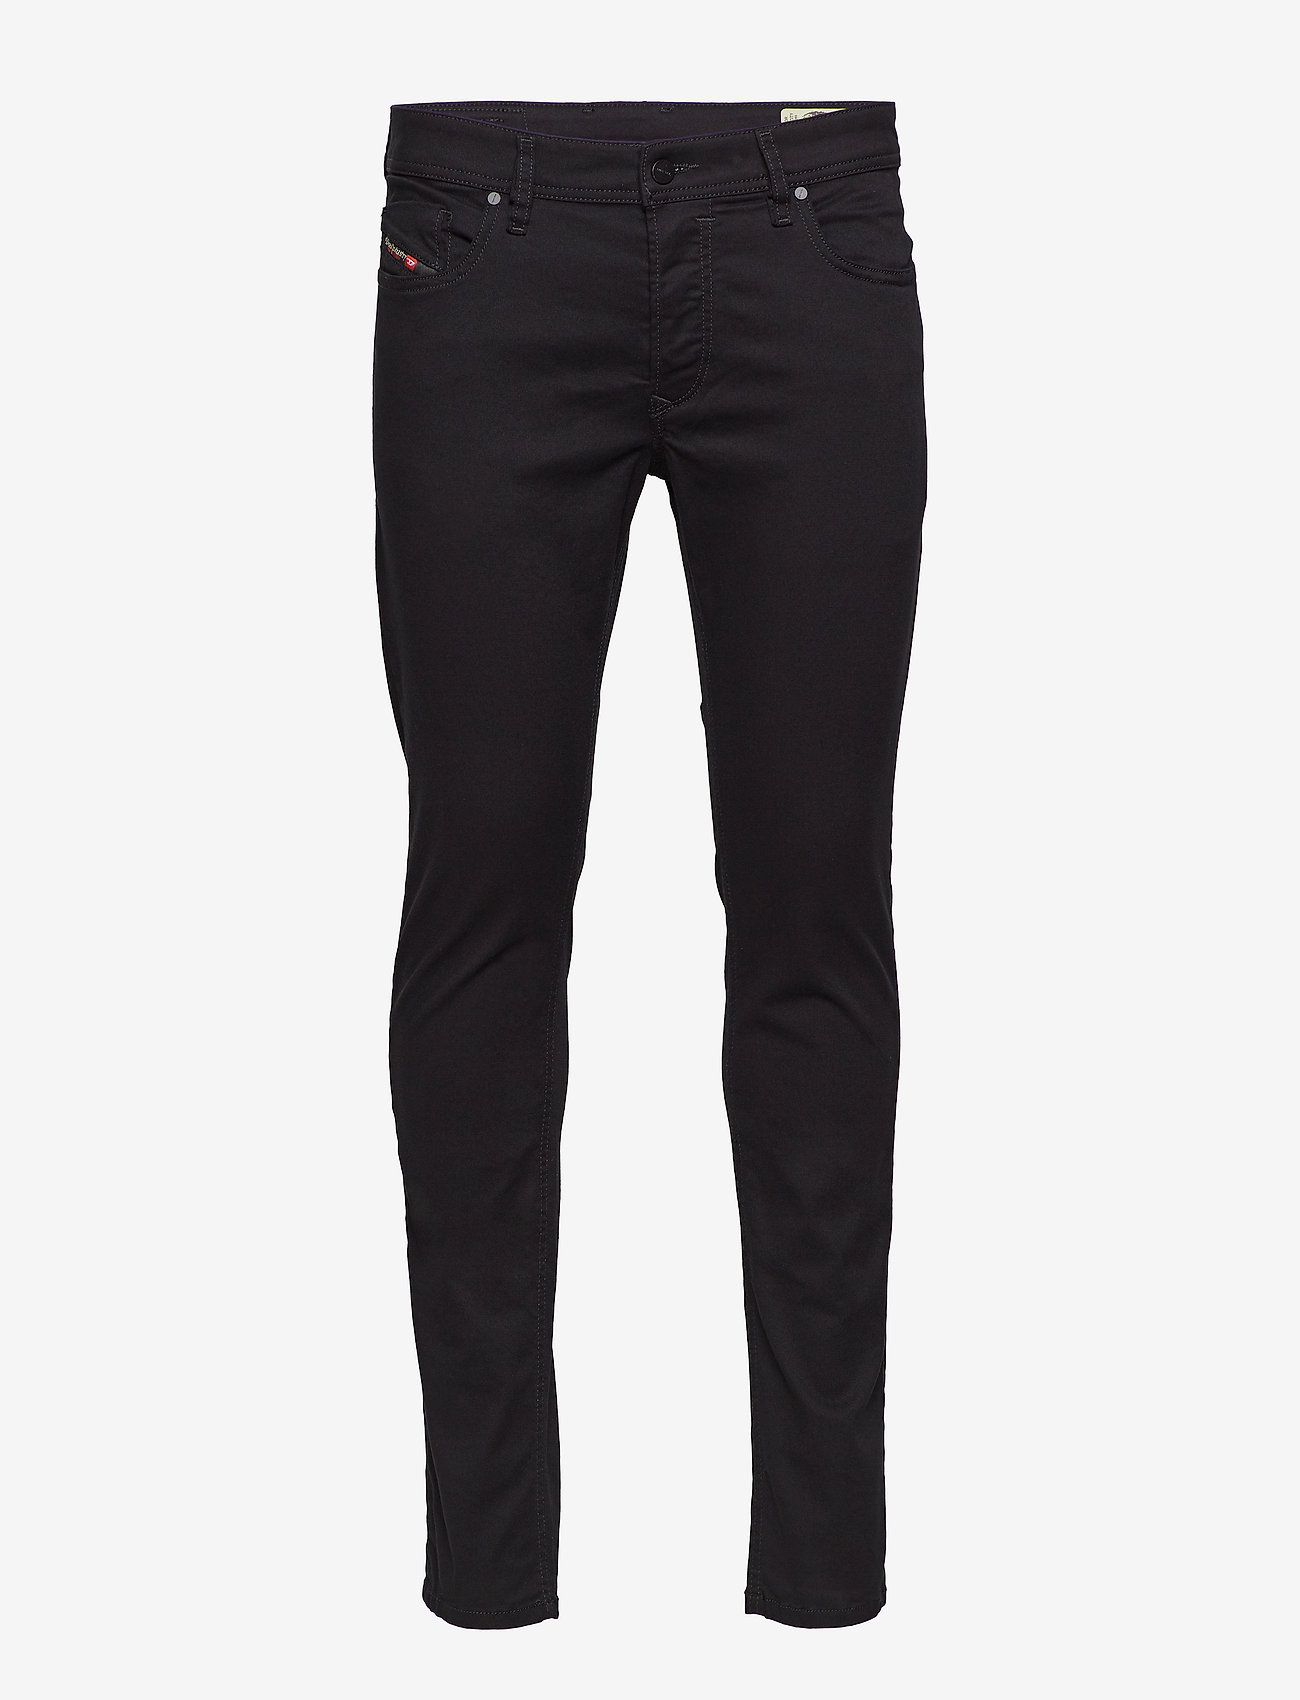 Diesel Men - SLEENKER - slim jeans - black/denim - 0